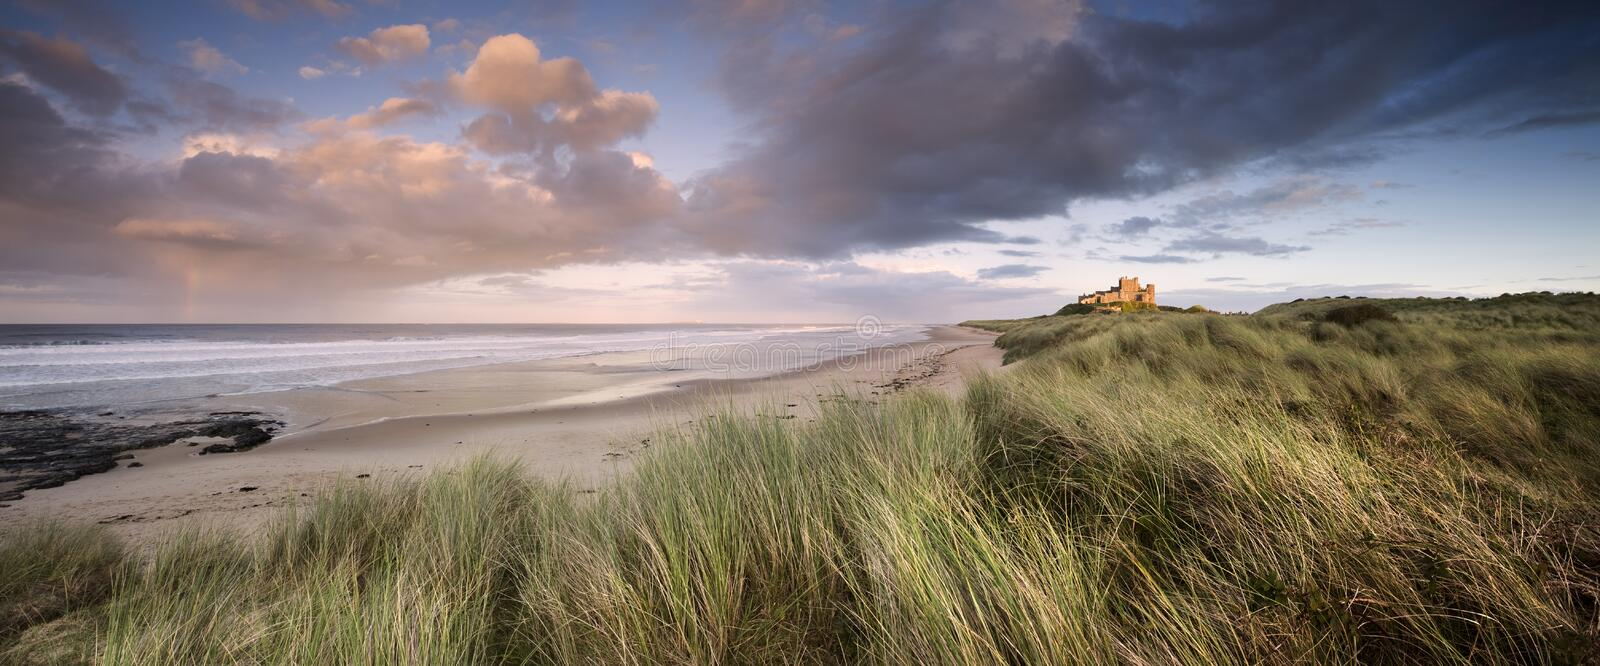 Bamburgh Castle at Sunset. This is Bamburgh Castle in Northumberland, England. The Farne Islands are visible on the horizon. There is a faint rainbow to the left royalty free stock photography